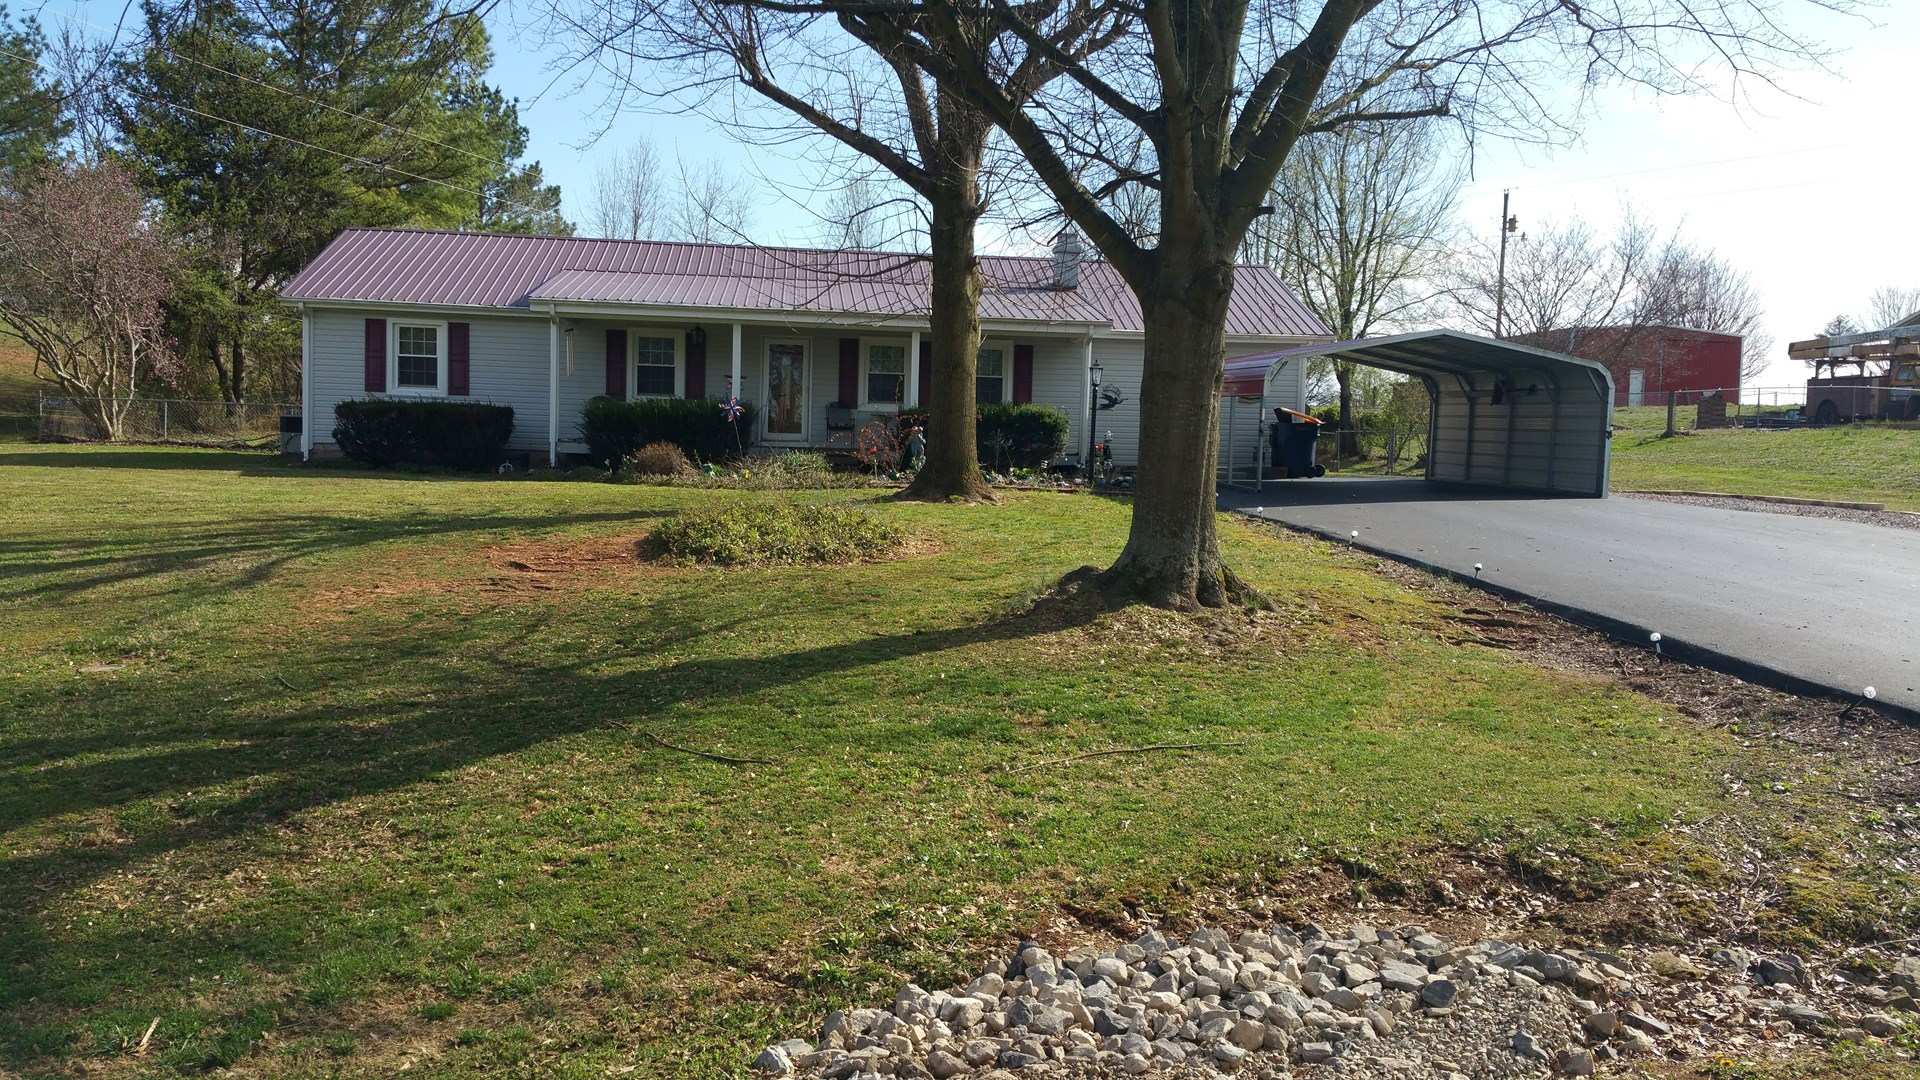 3 bedroom 2 bath Country Home for Sale near Franklin Ky.